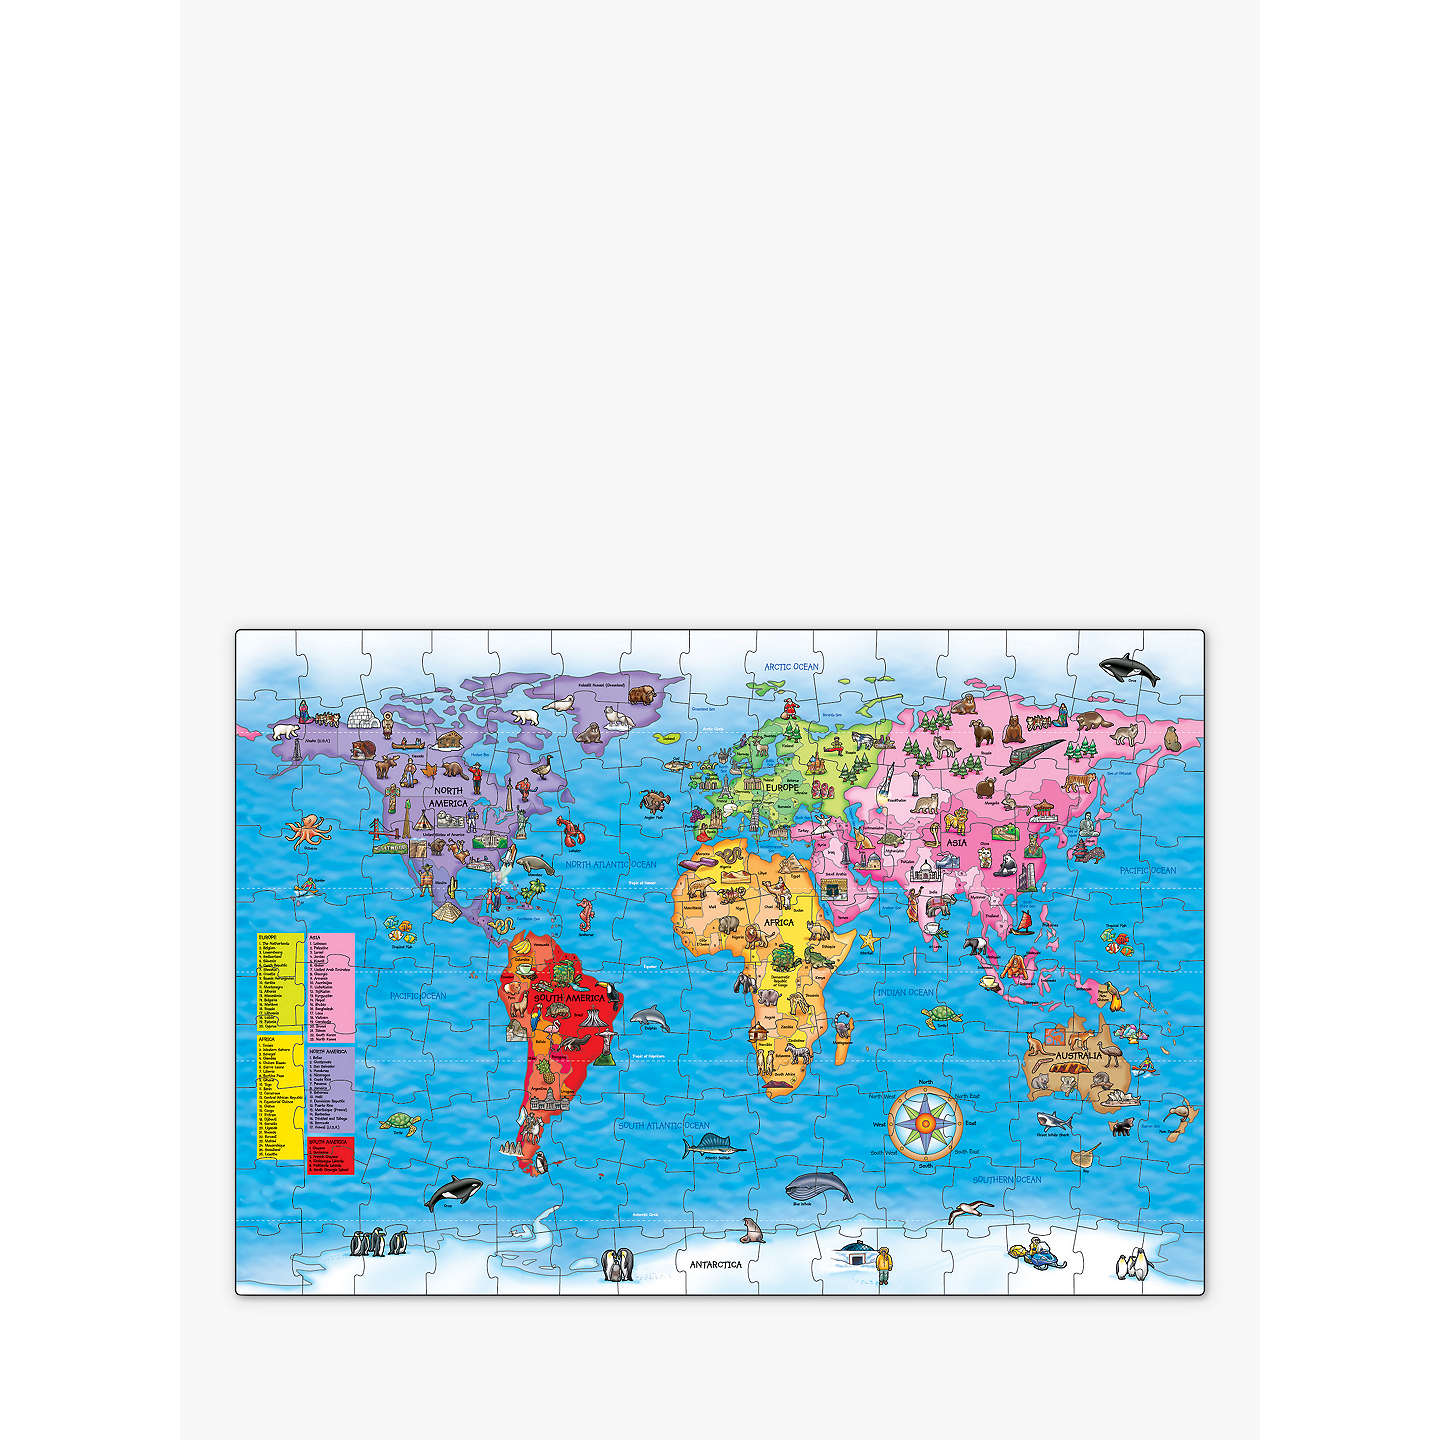 Orchard toys world map jigsaw puzzle poster at john lewis buyorchard toys world map jigsaw puzzle poster online at johnlewis gumiabroncs Image collections